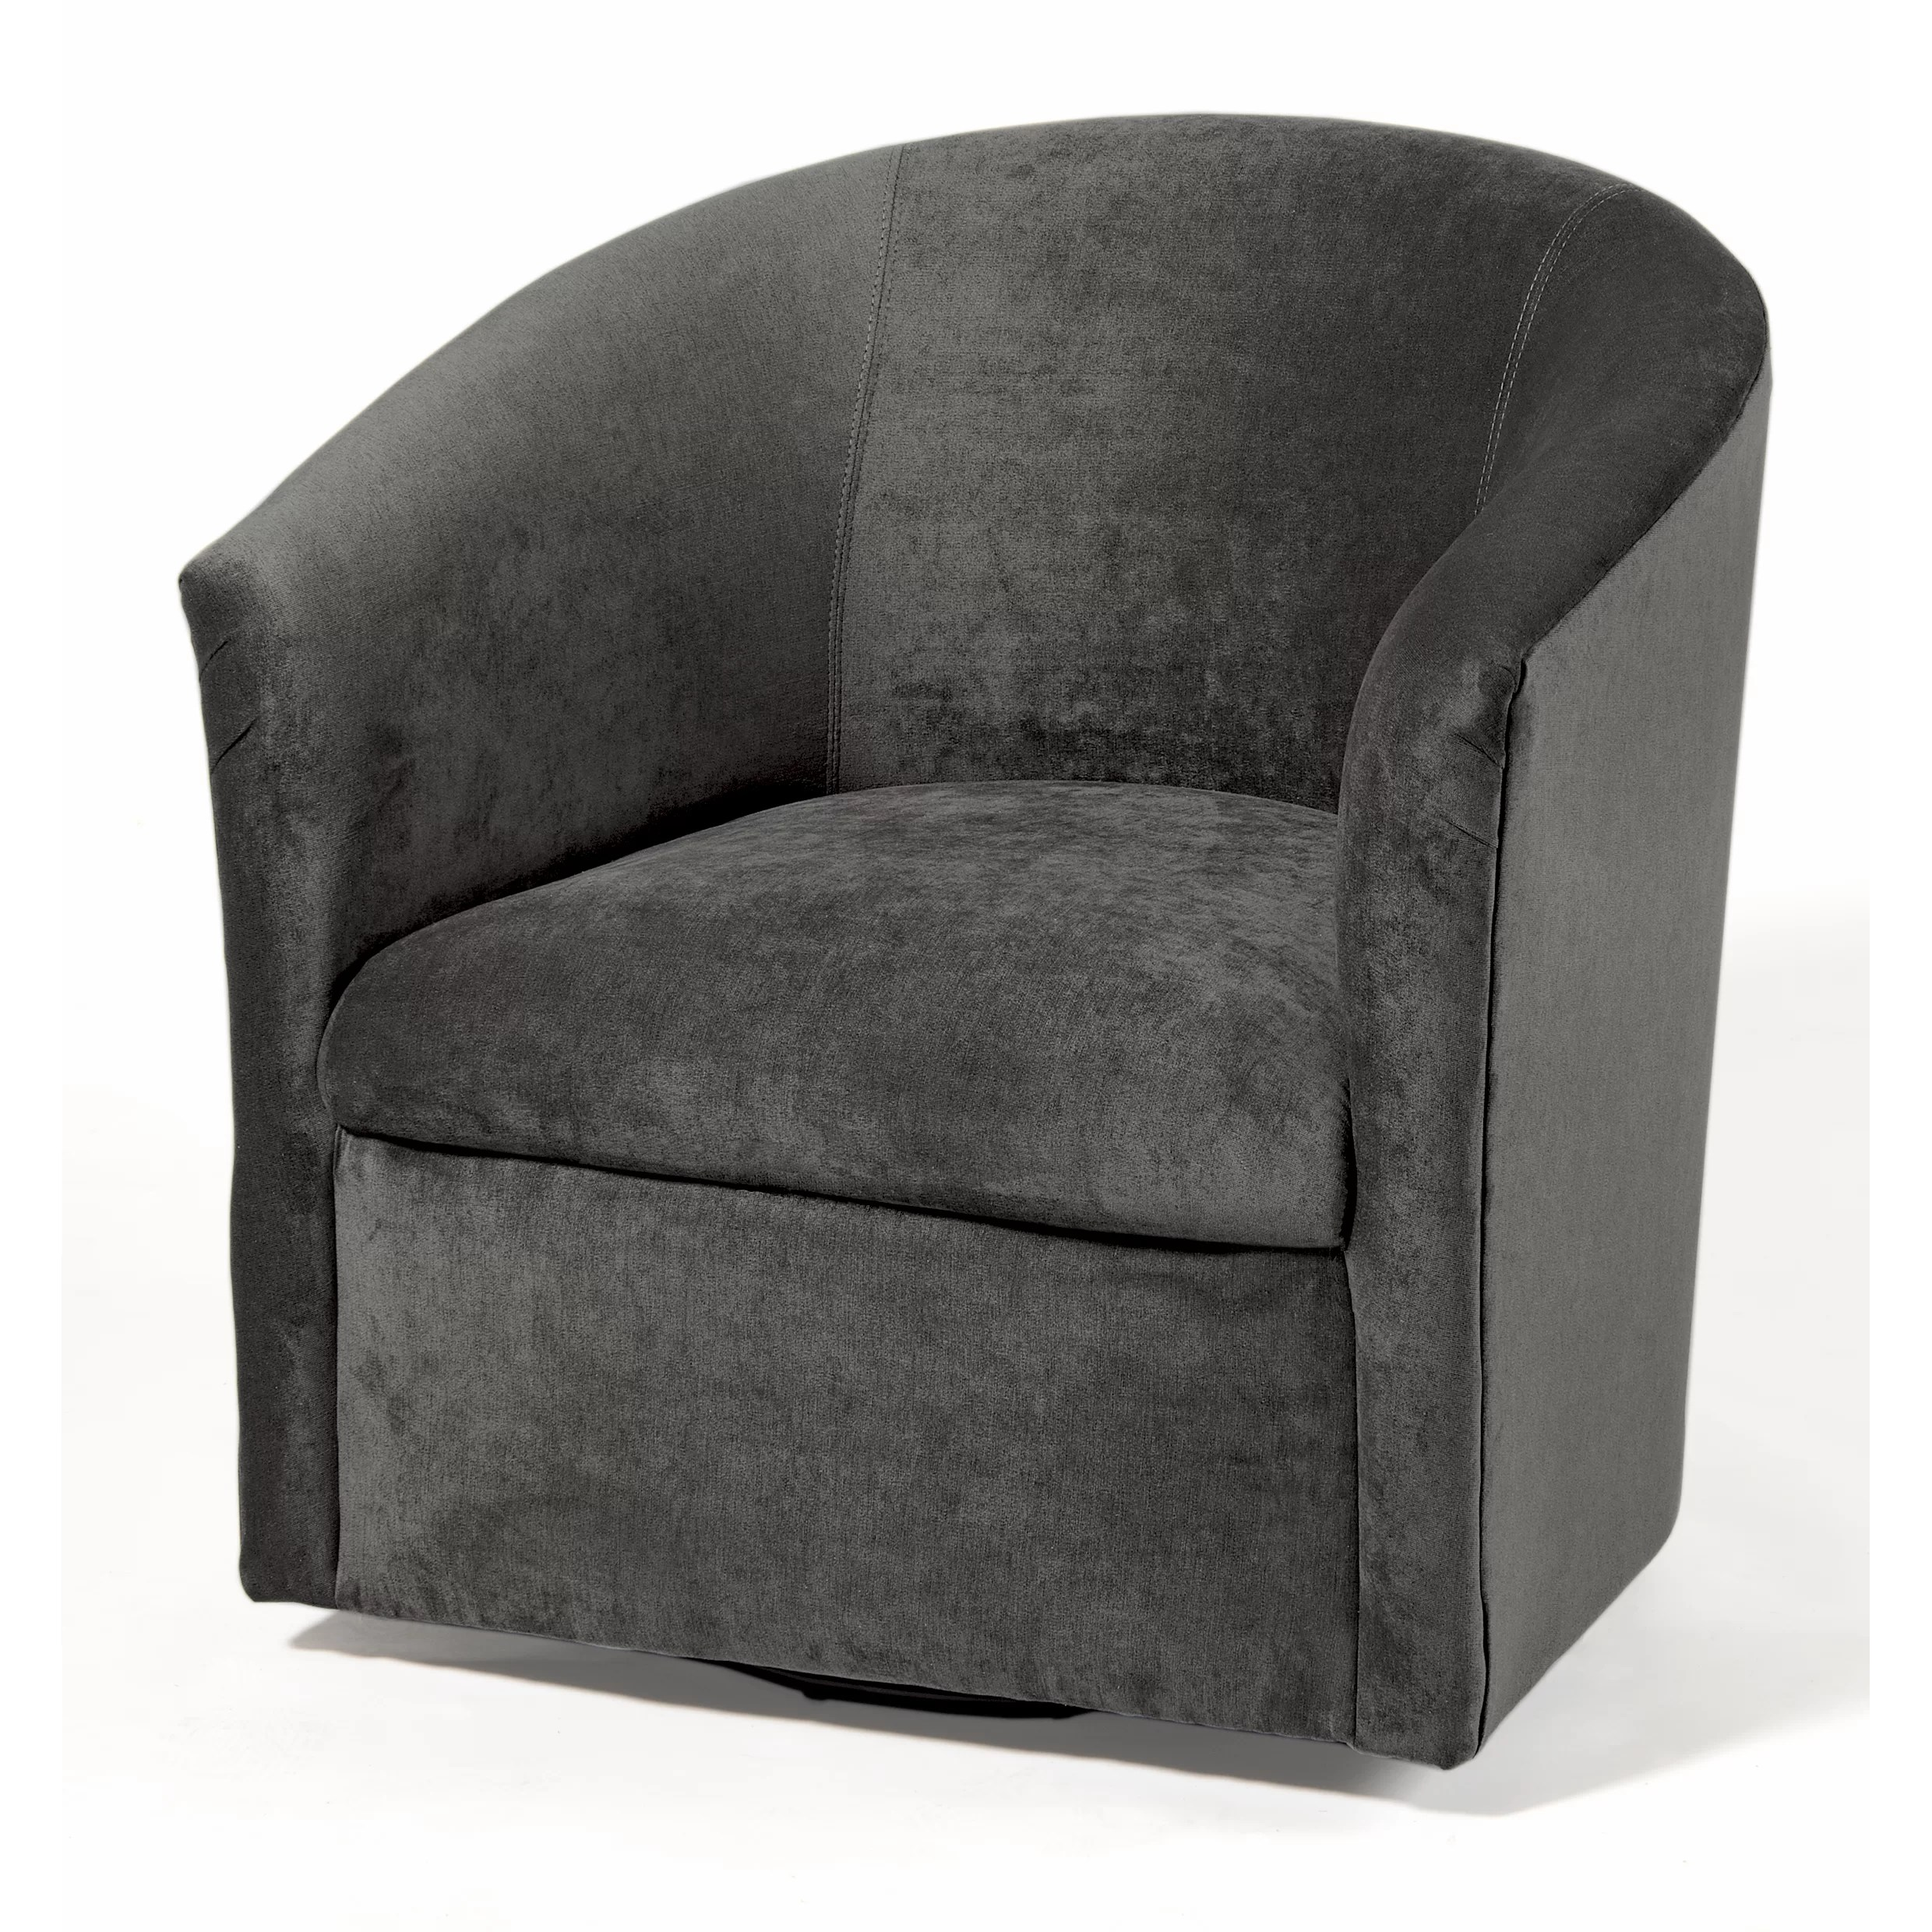 Barrel Chair Swivel Comfort Pointe Elizabeth Swivel Barrel Chair And Reviews